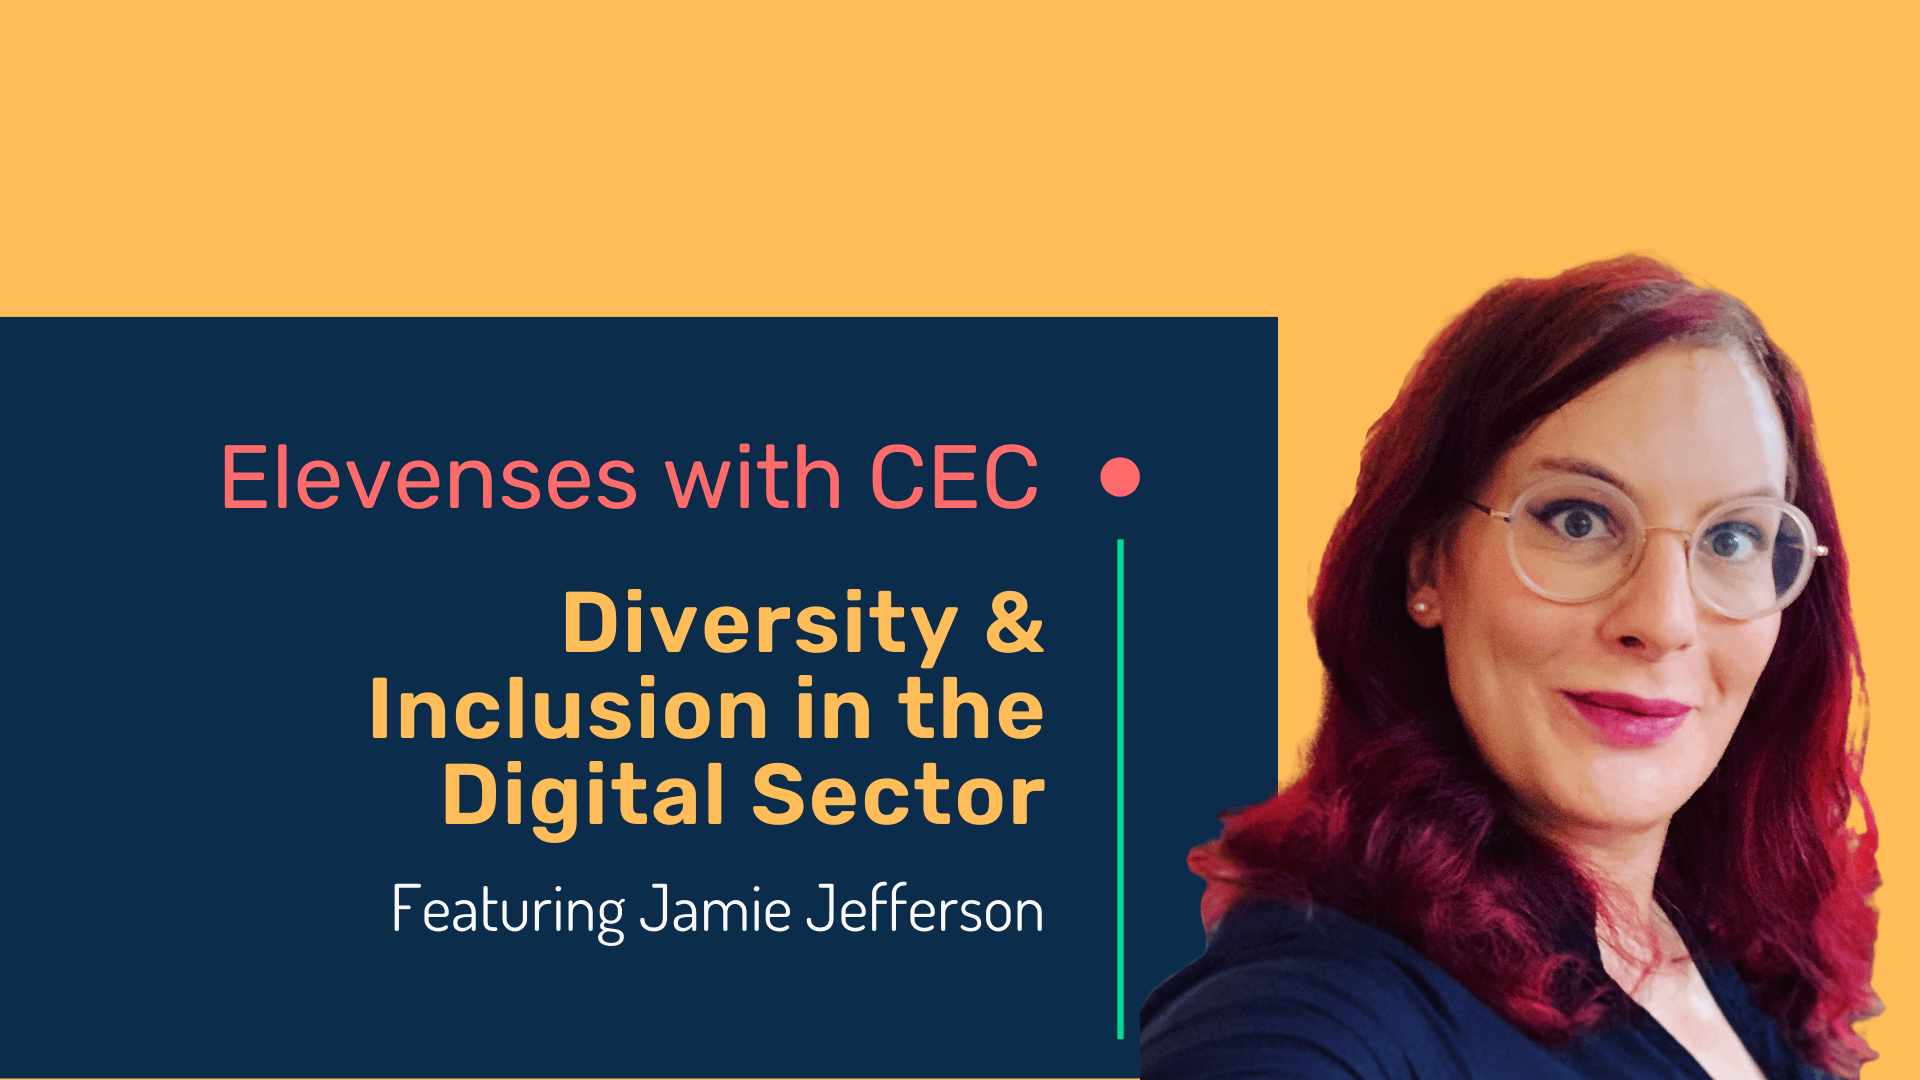 Diversity & inclusion in the digital sector with Jamie Jefferson